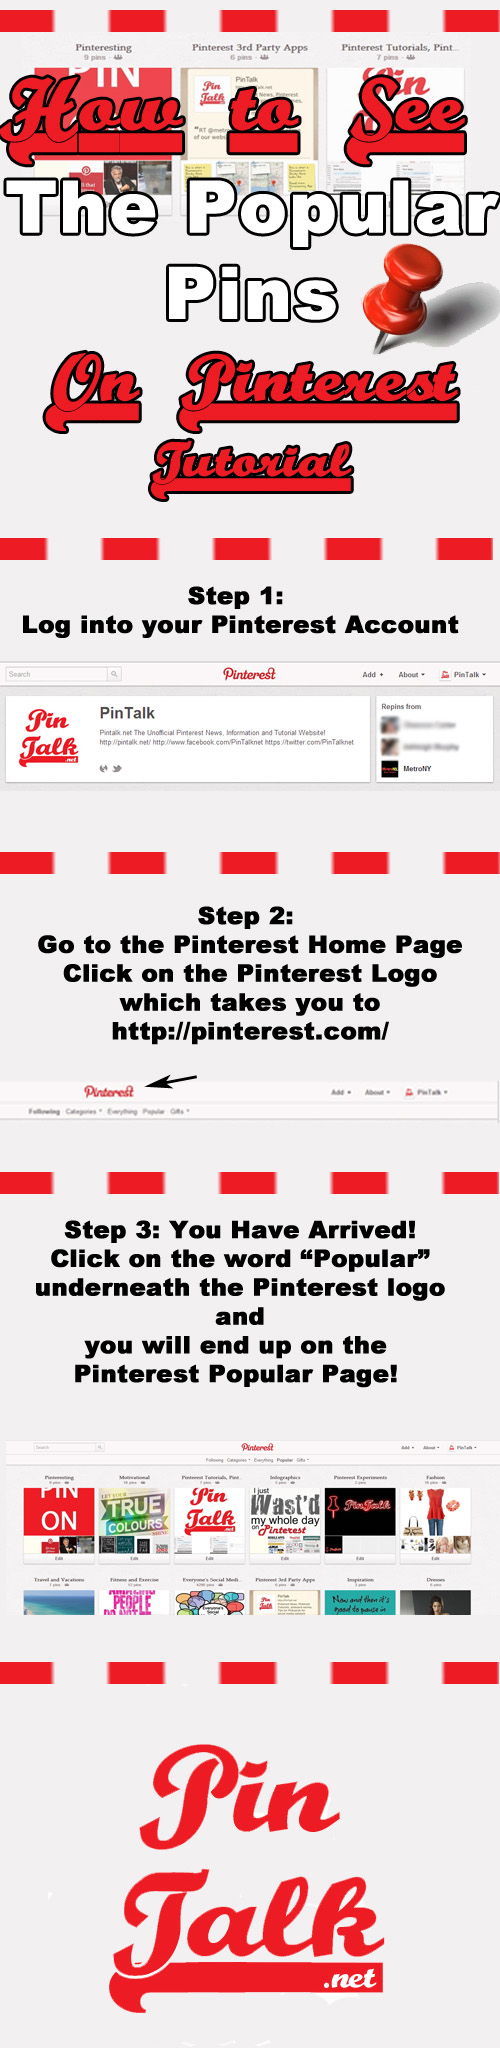 How to View Popular Pins On Pinterest